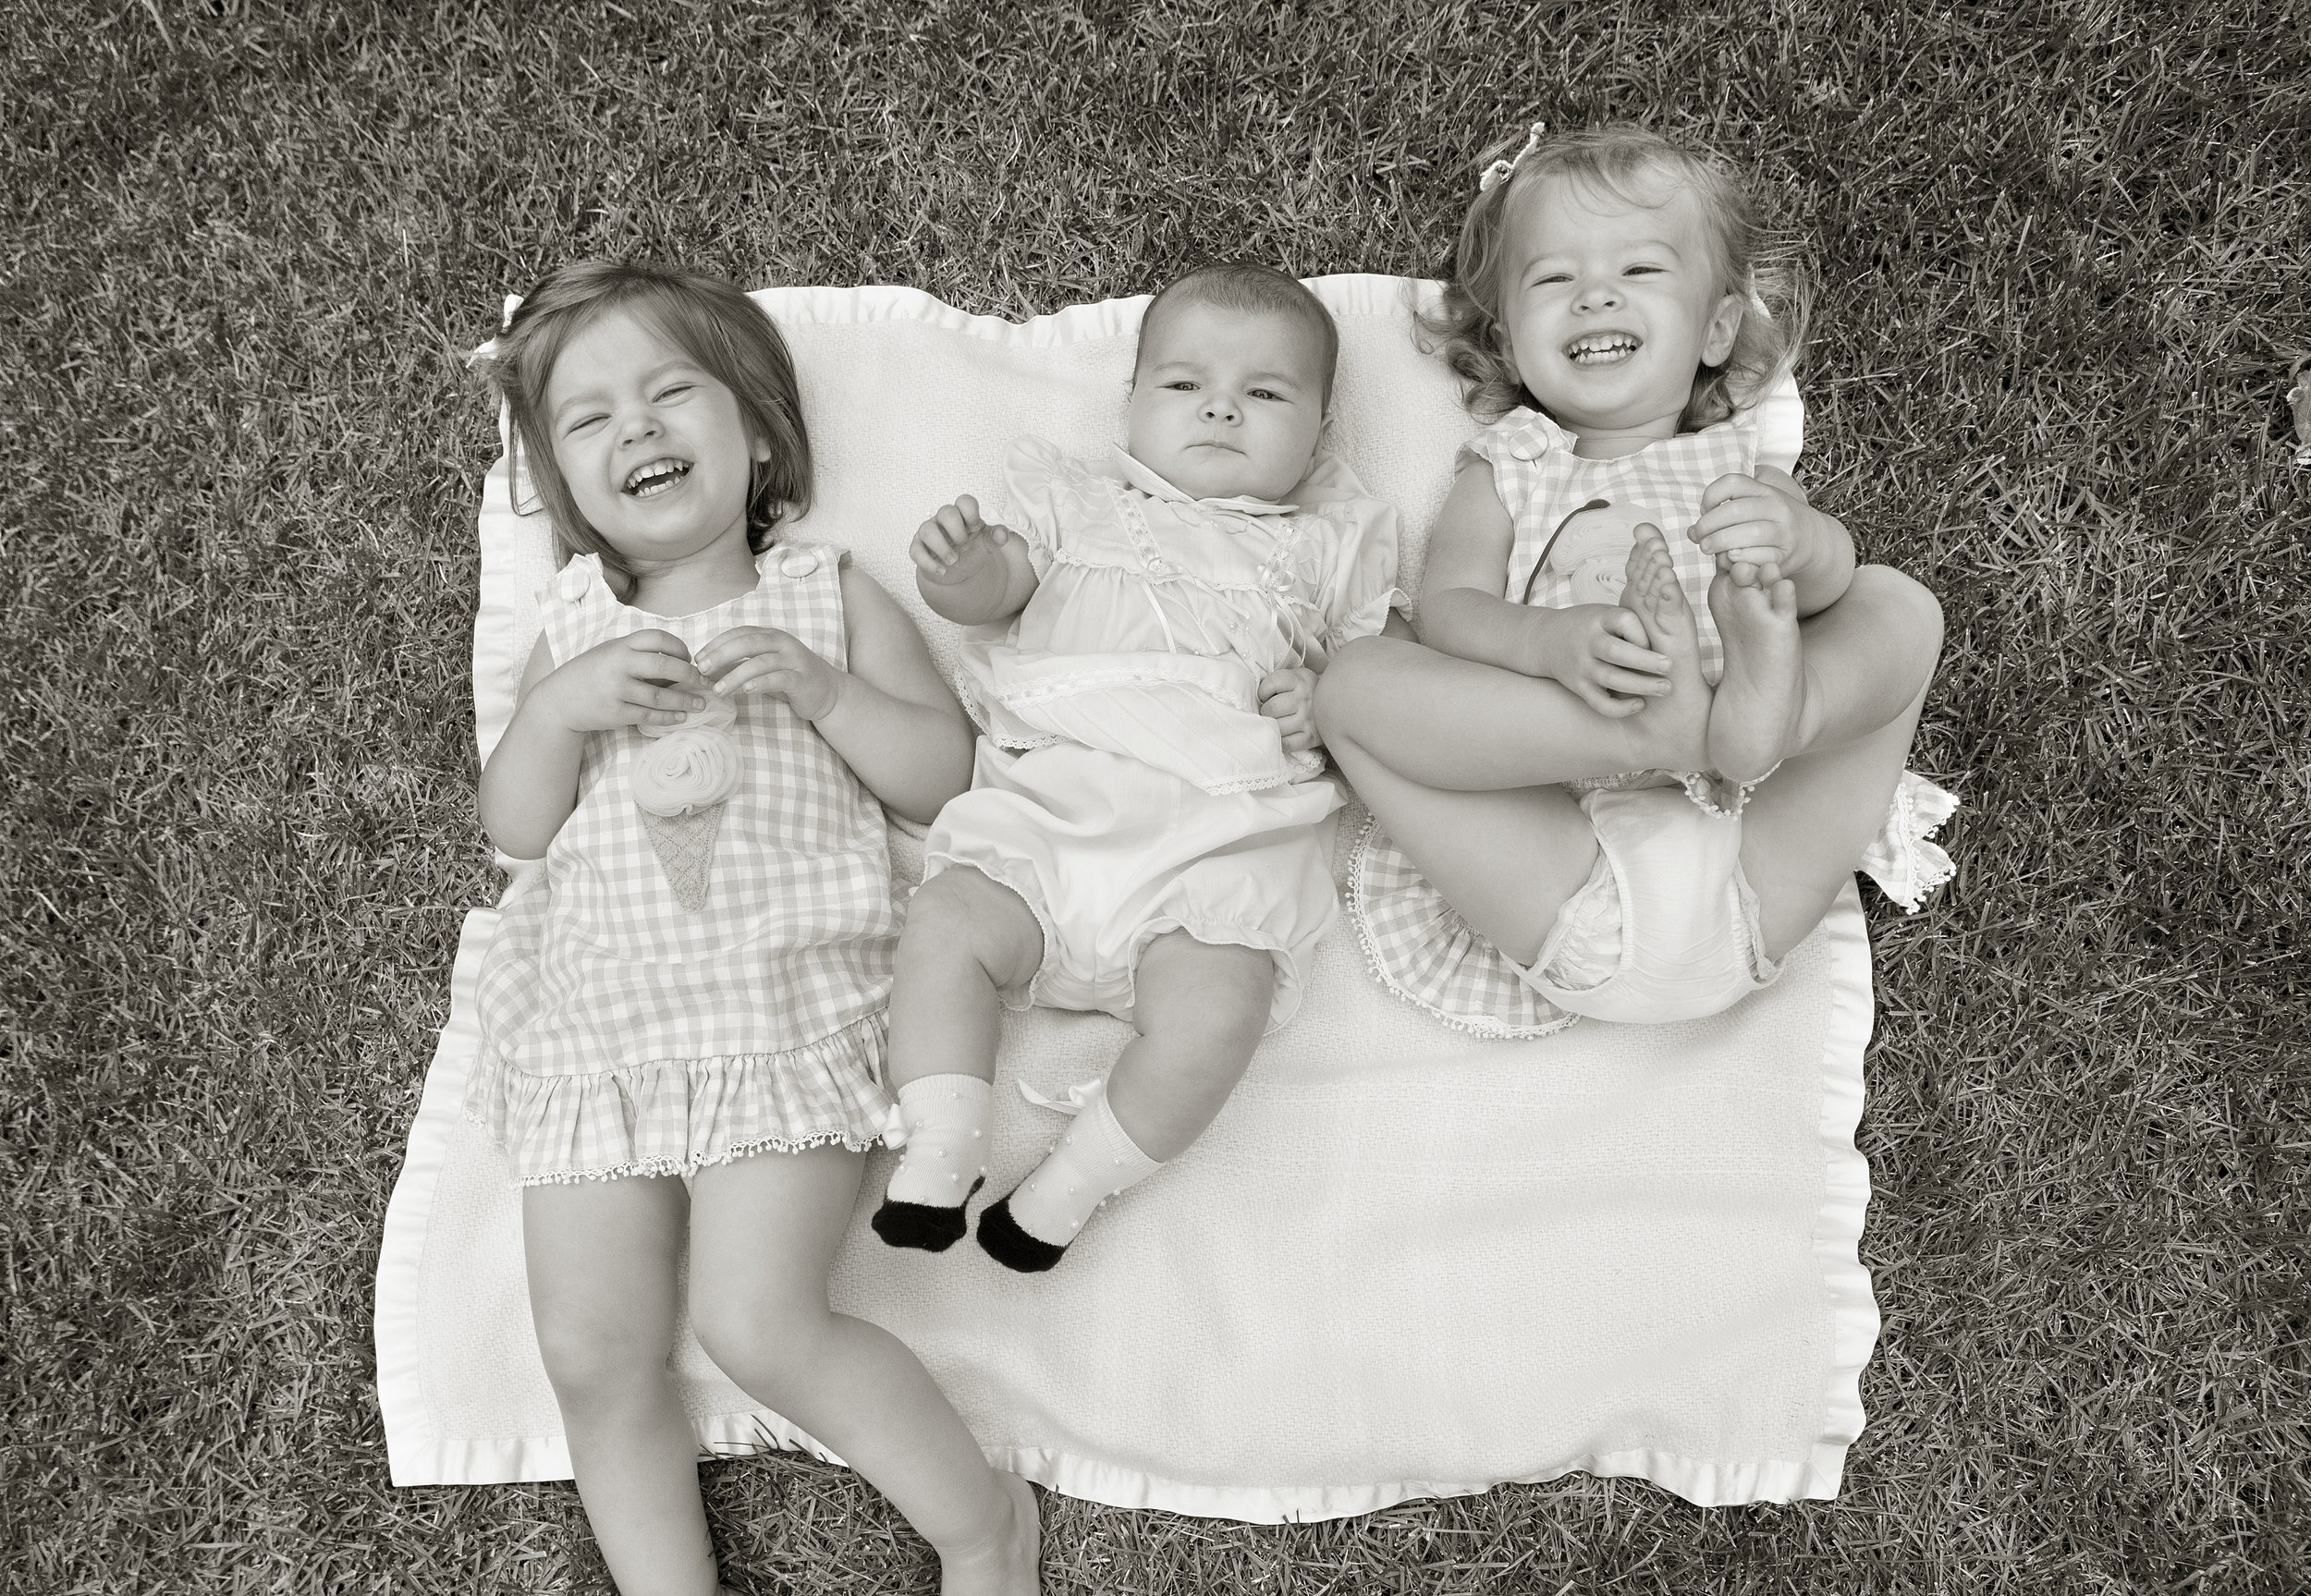 Iconic photo of two older sisters enjoying a moment of whimsy with their baby sister. Photo by Lucille Khornak.